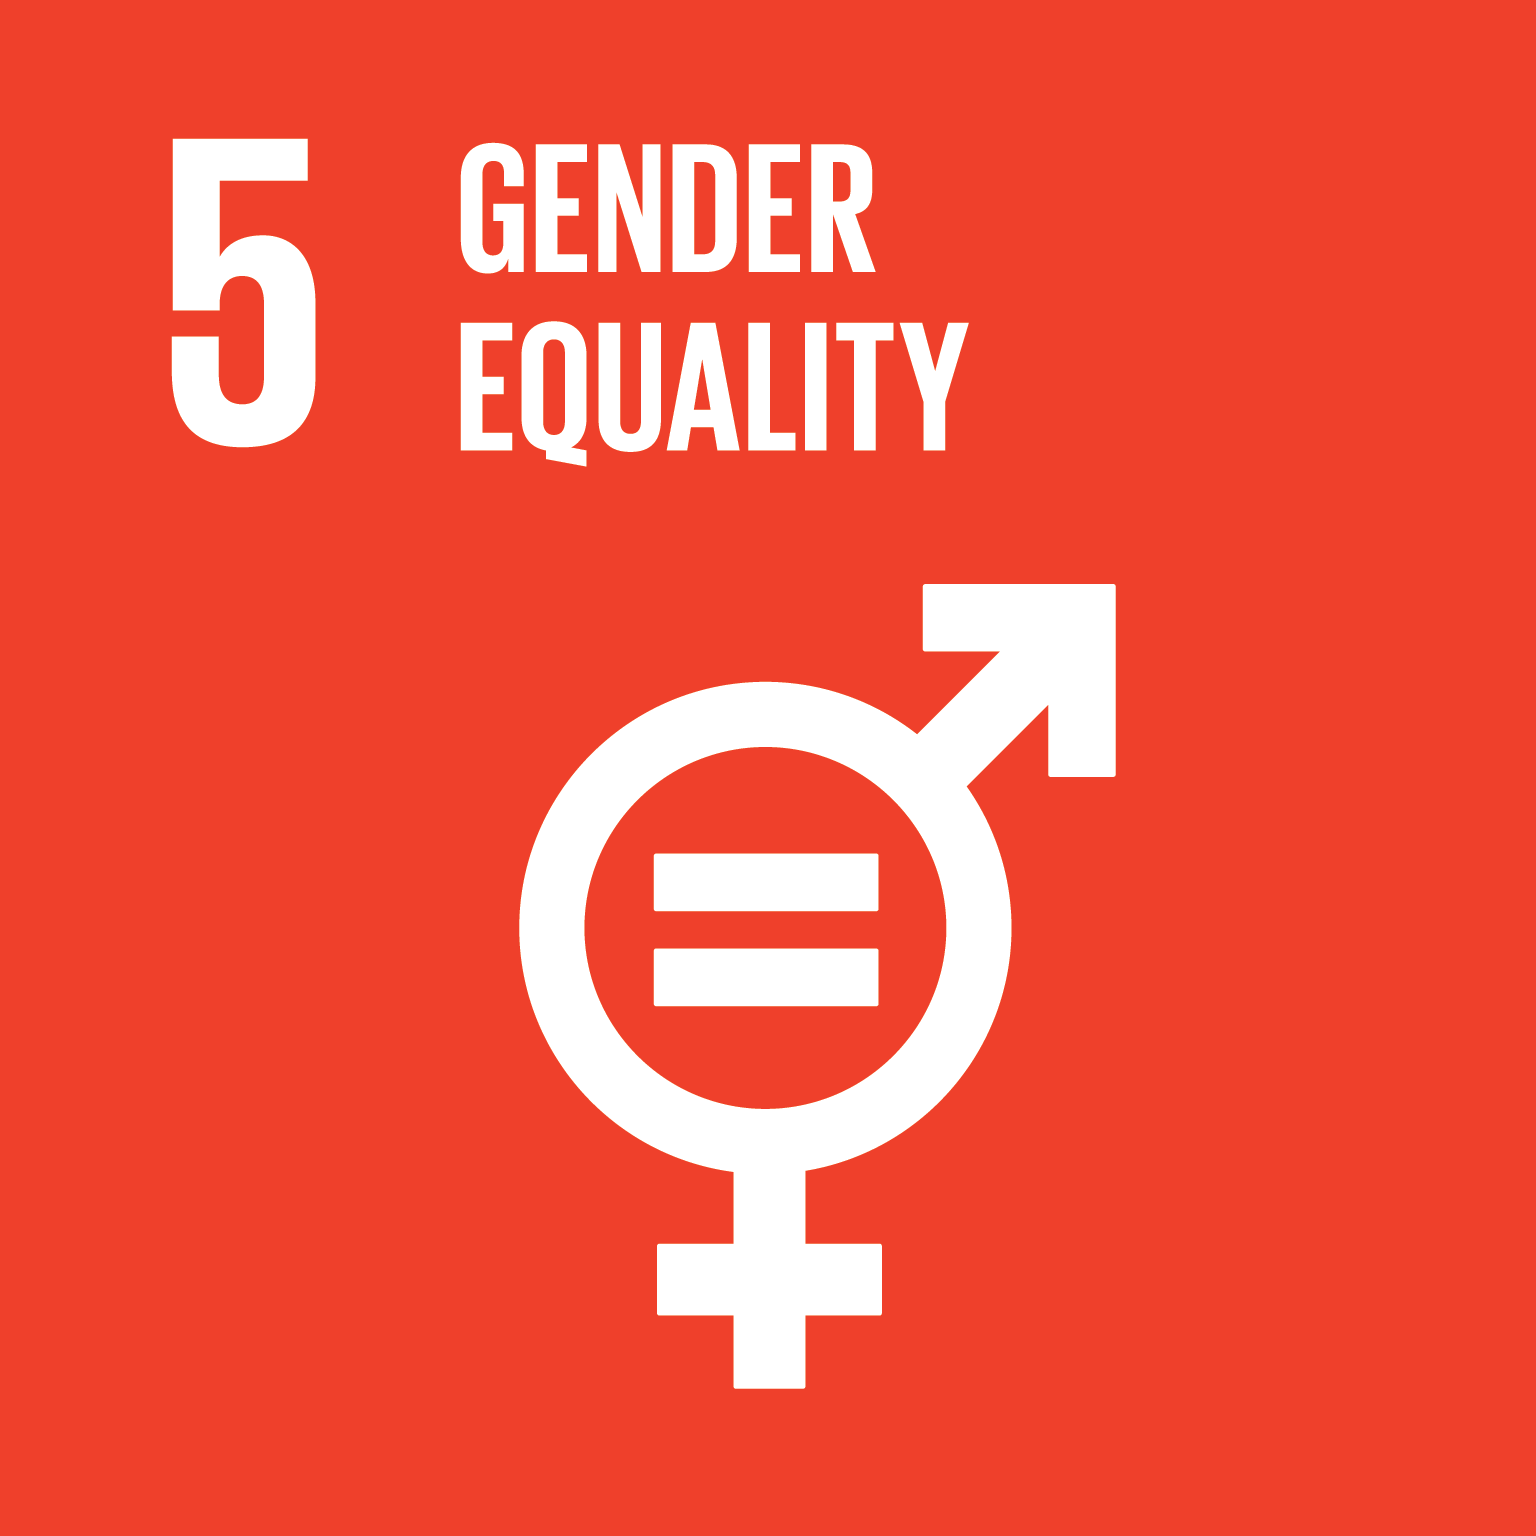 Goal 5: Gender Equality, the text of this infographic is listed below